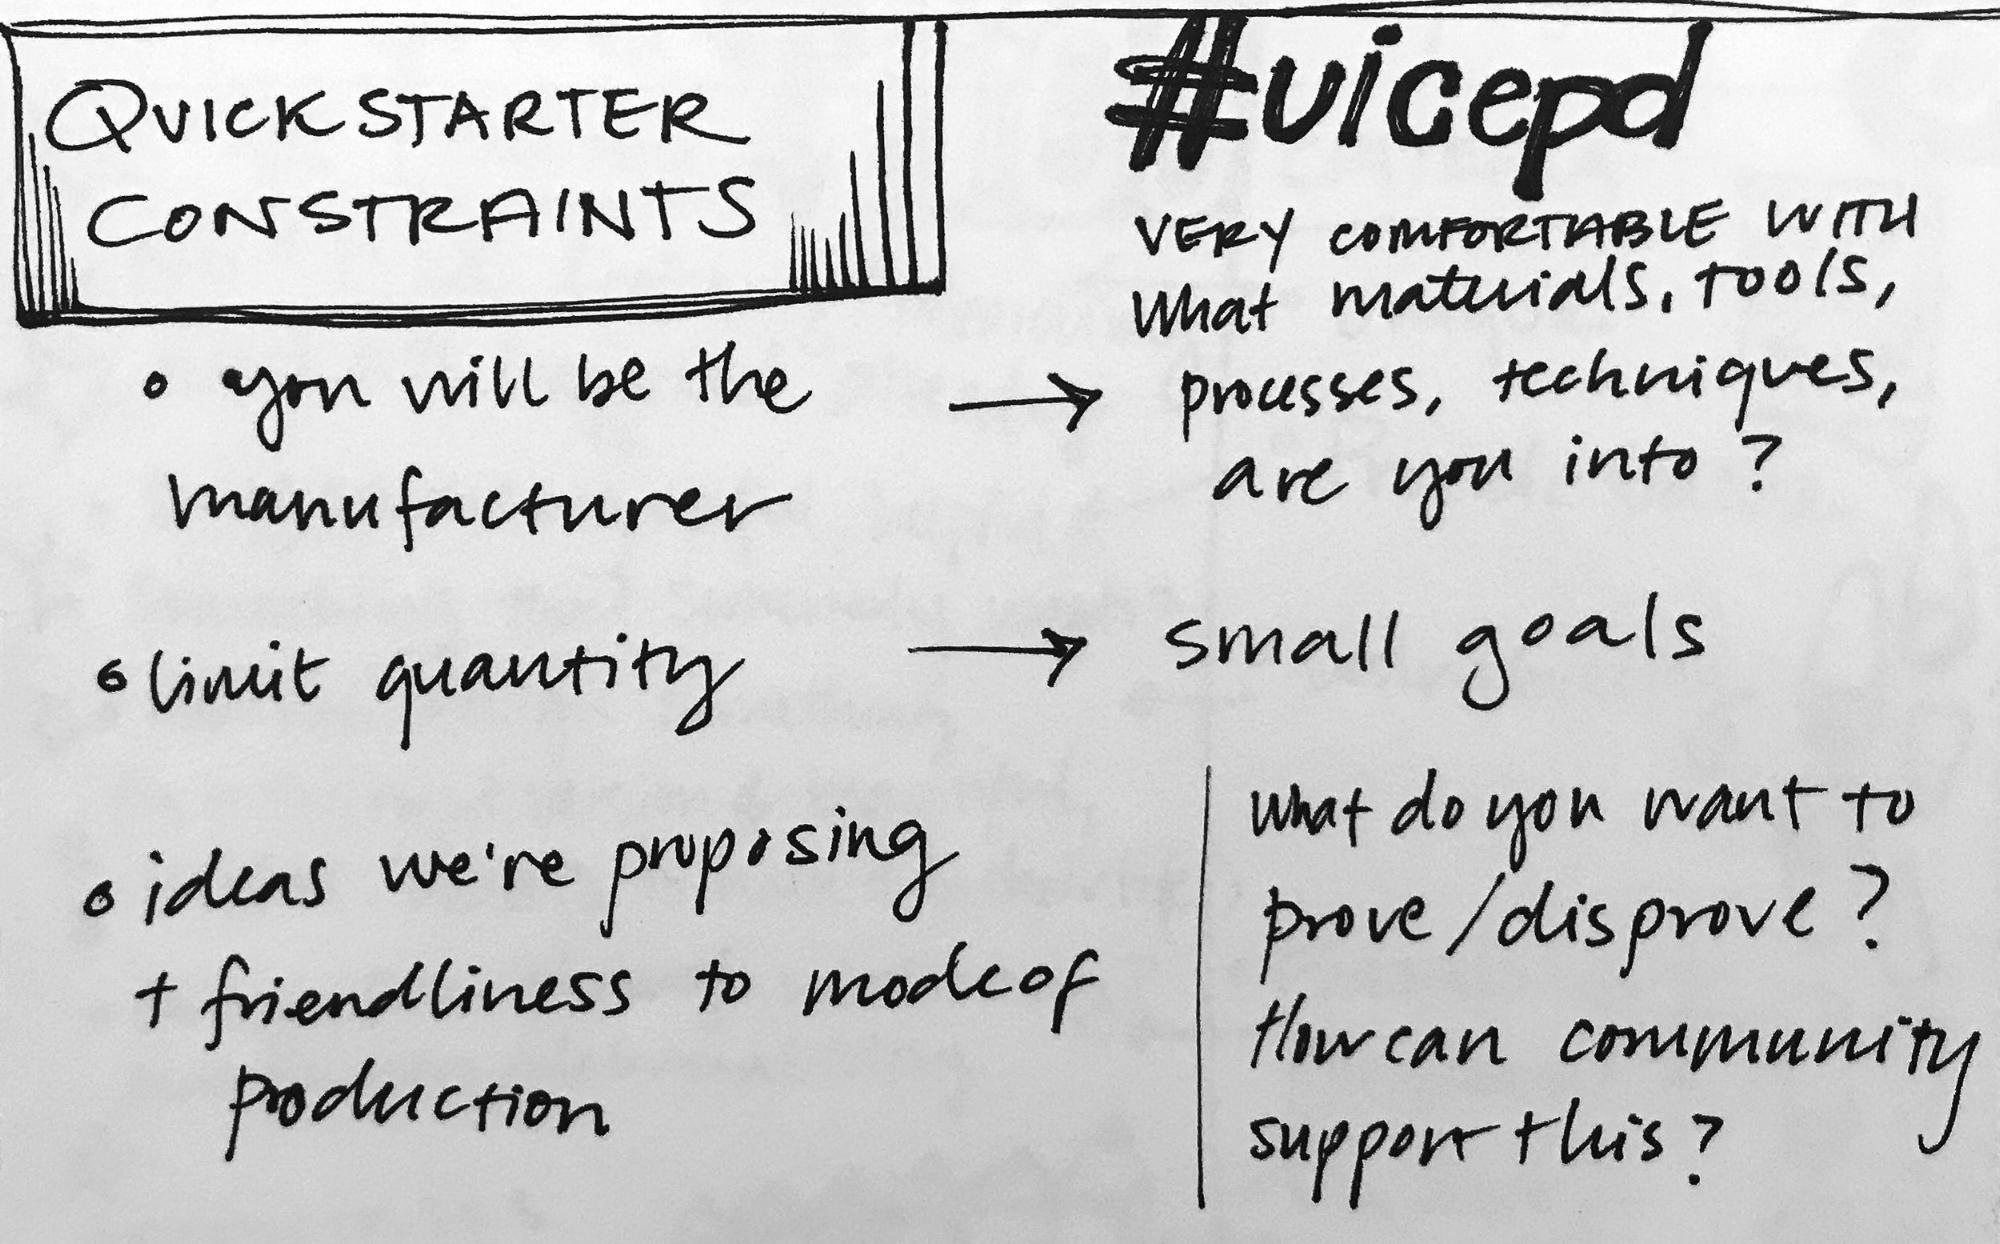 Class notes on Quickstarter campaign constraints. Follow #uicepd on Instagram for project updates!